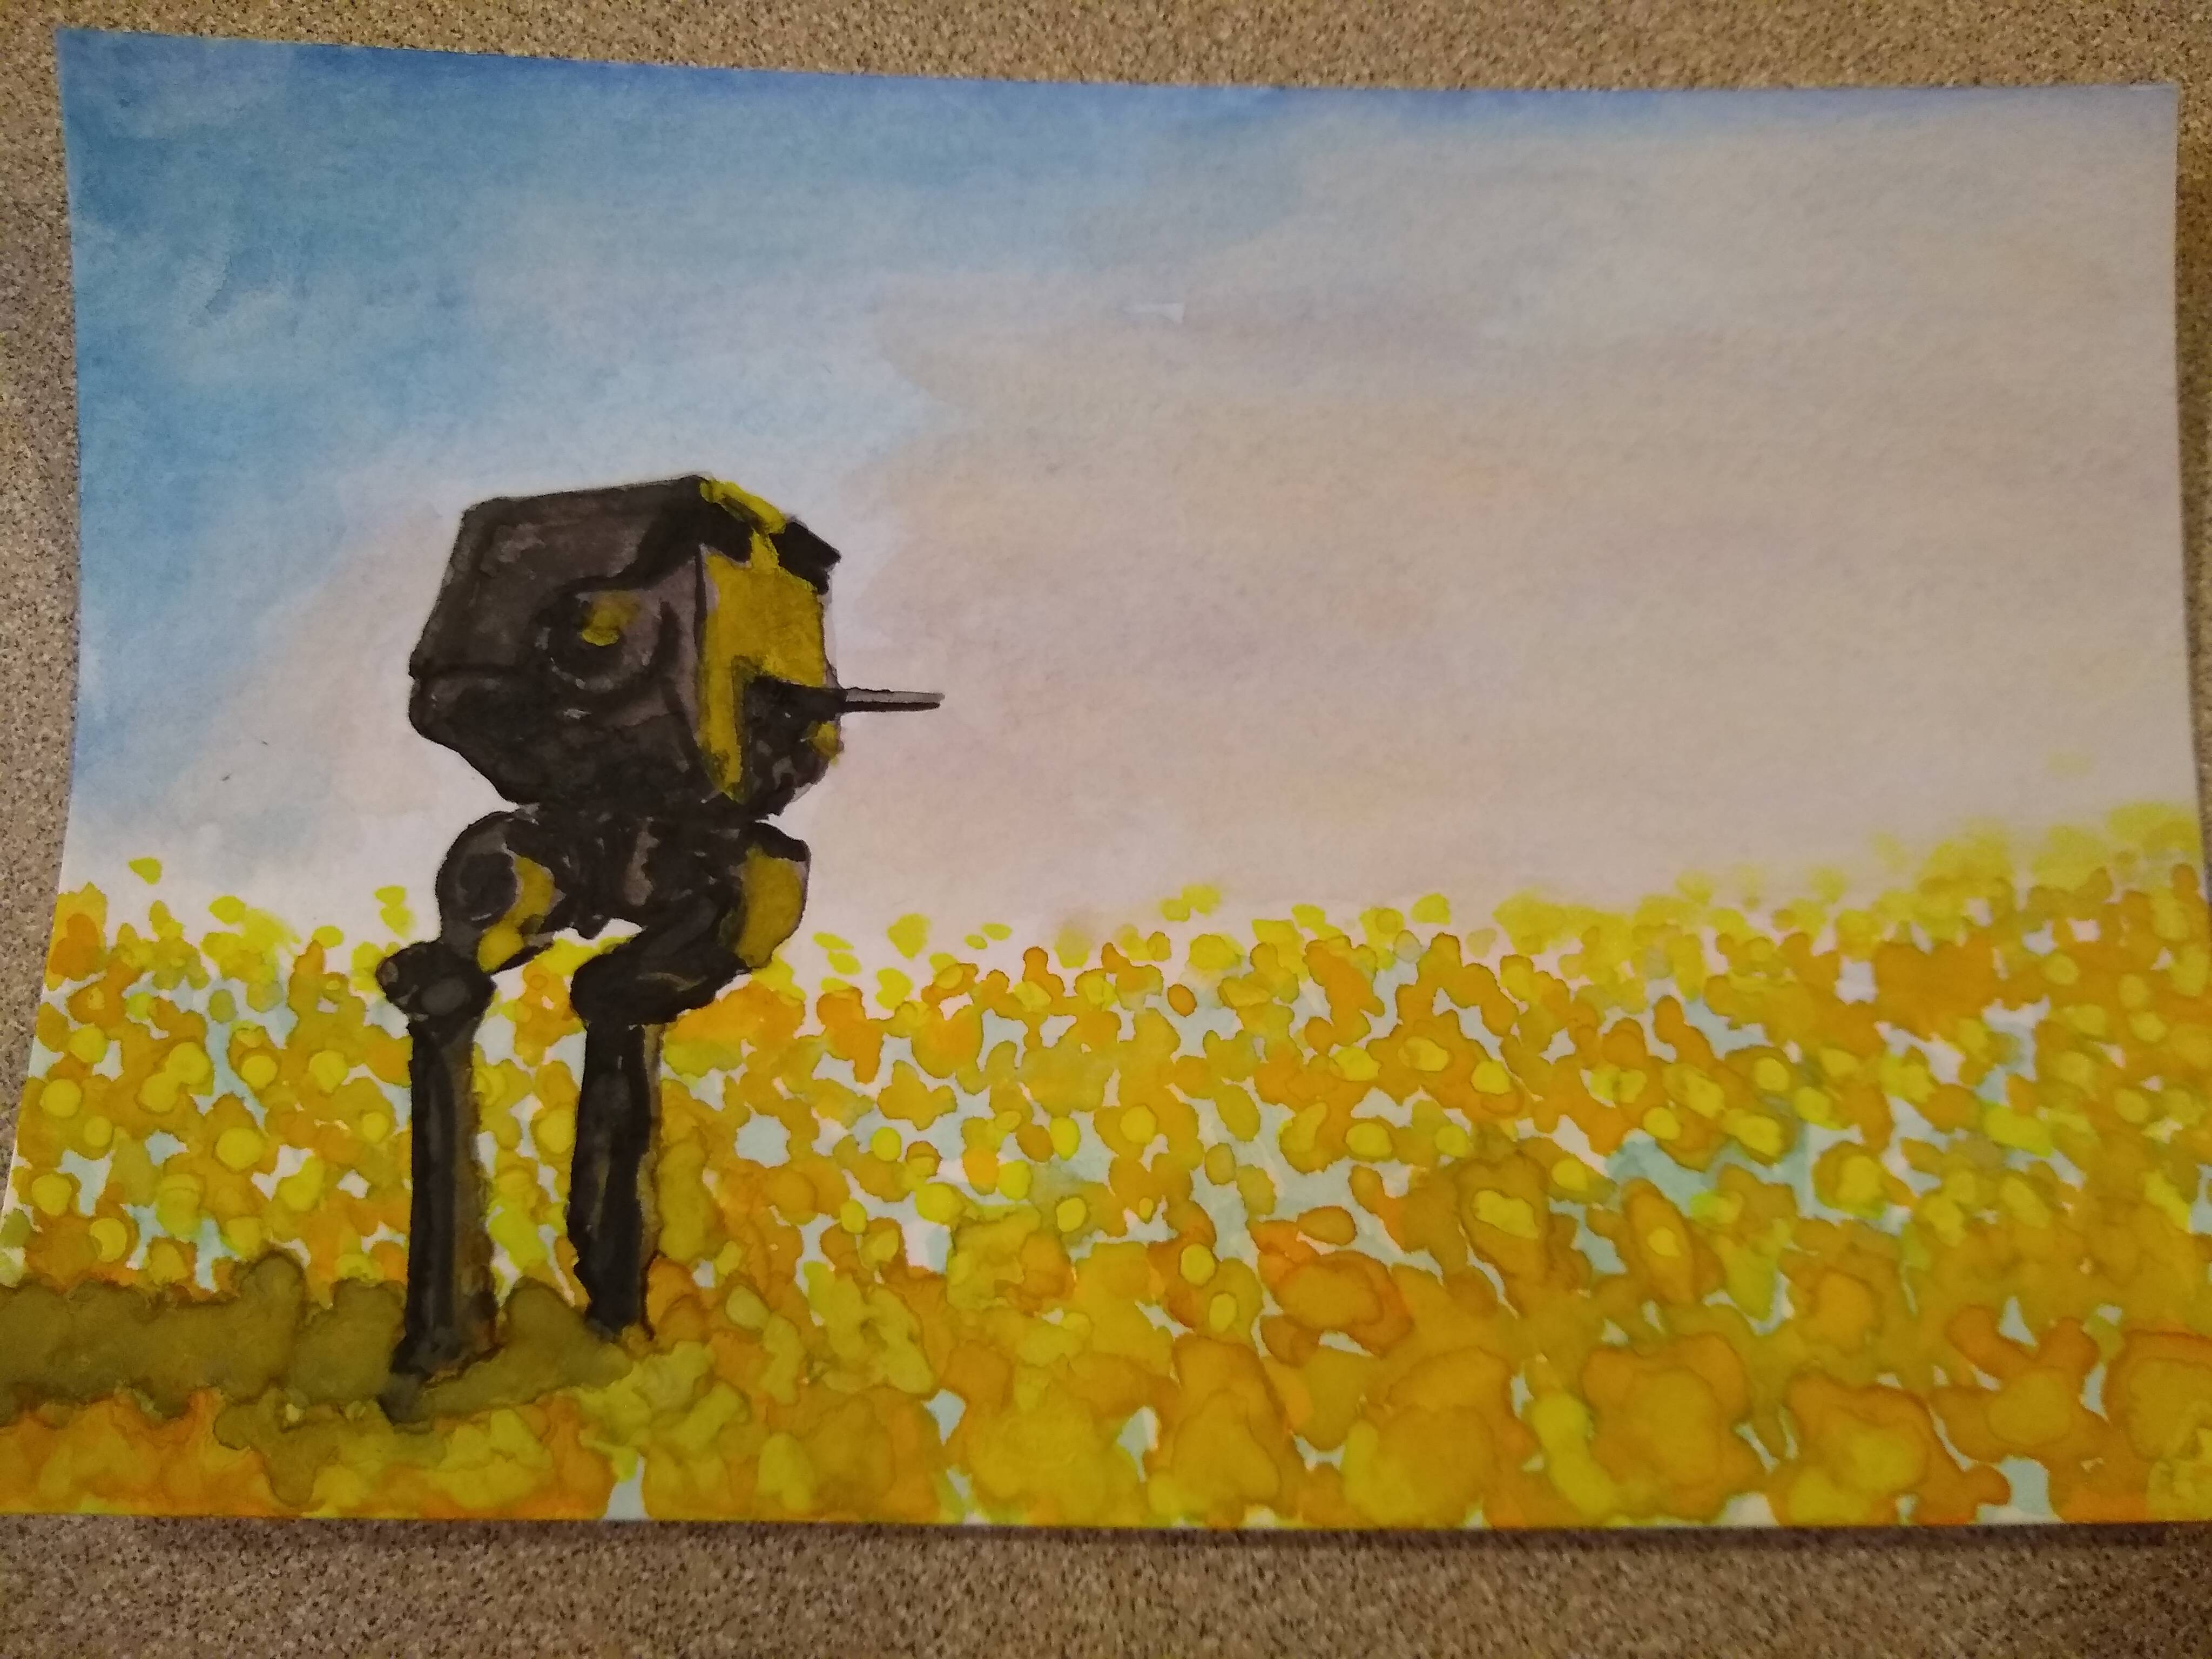 My wife was doing some watercolor landscapes and I asked her to add an AT-ST for me. I married the right woman.